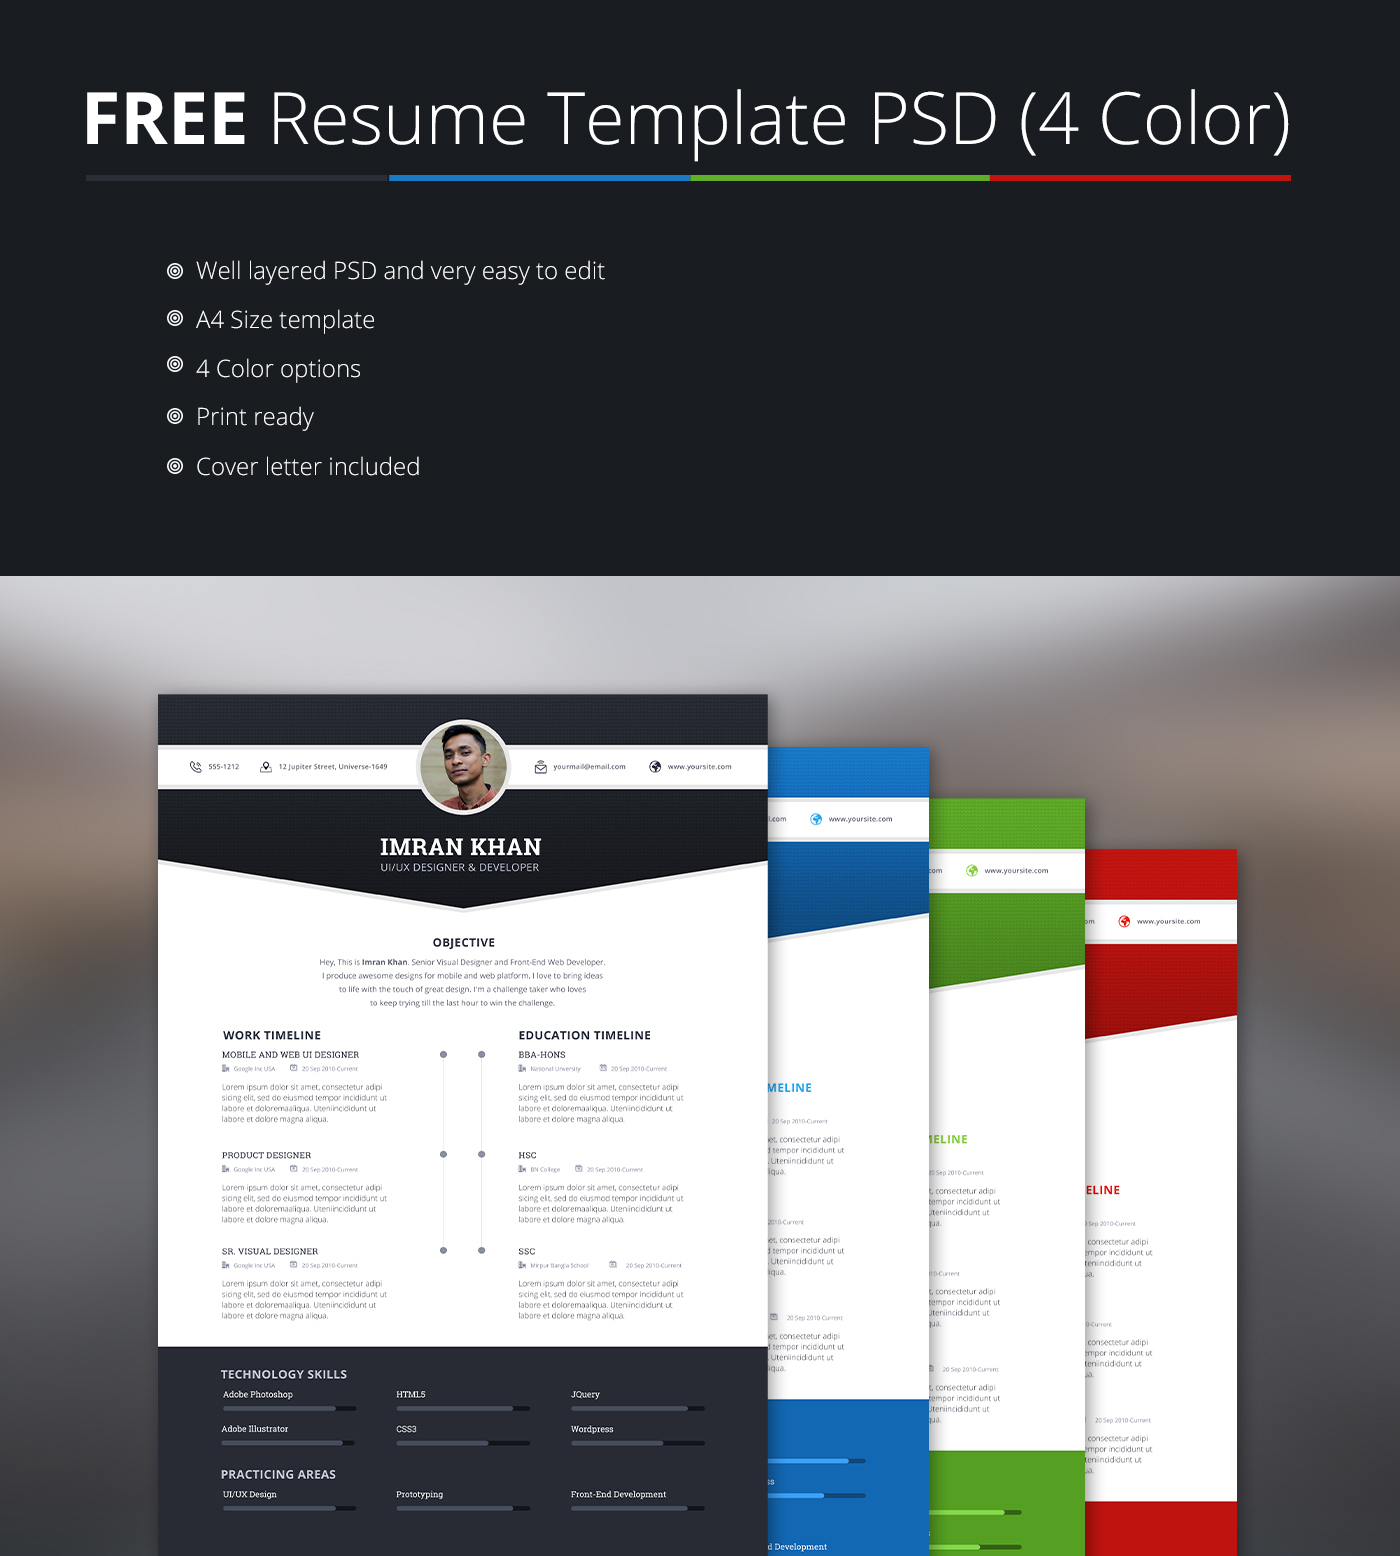 Free resume template psd 4 colors on behance yelopaper